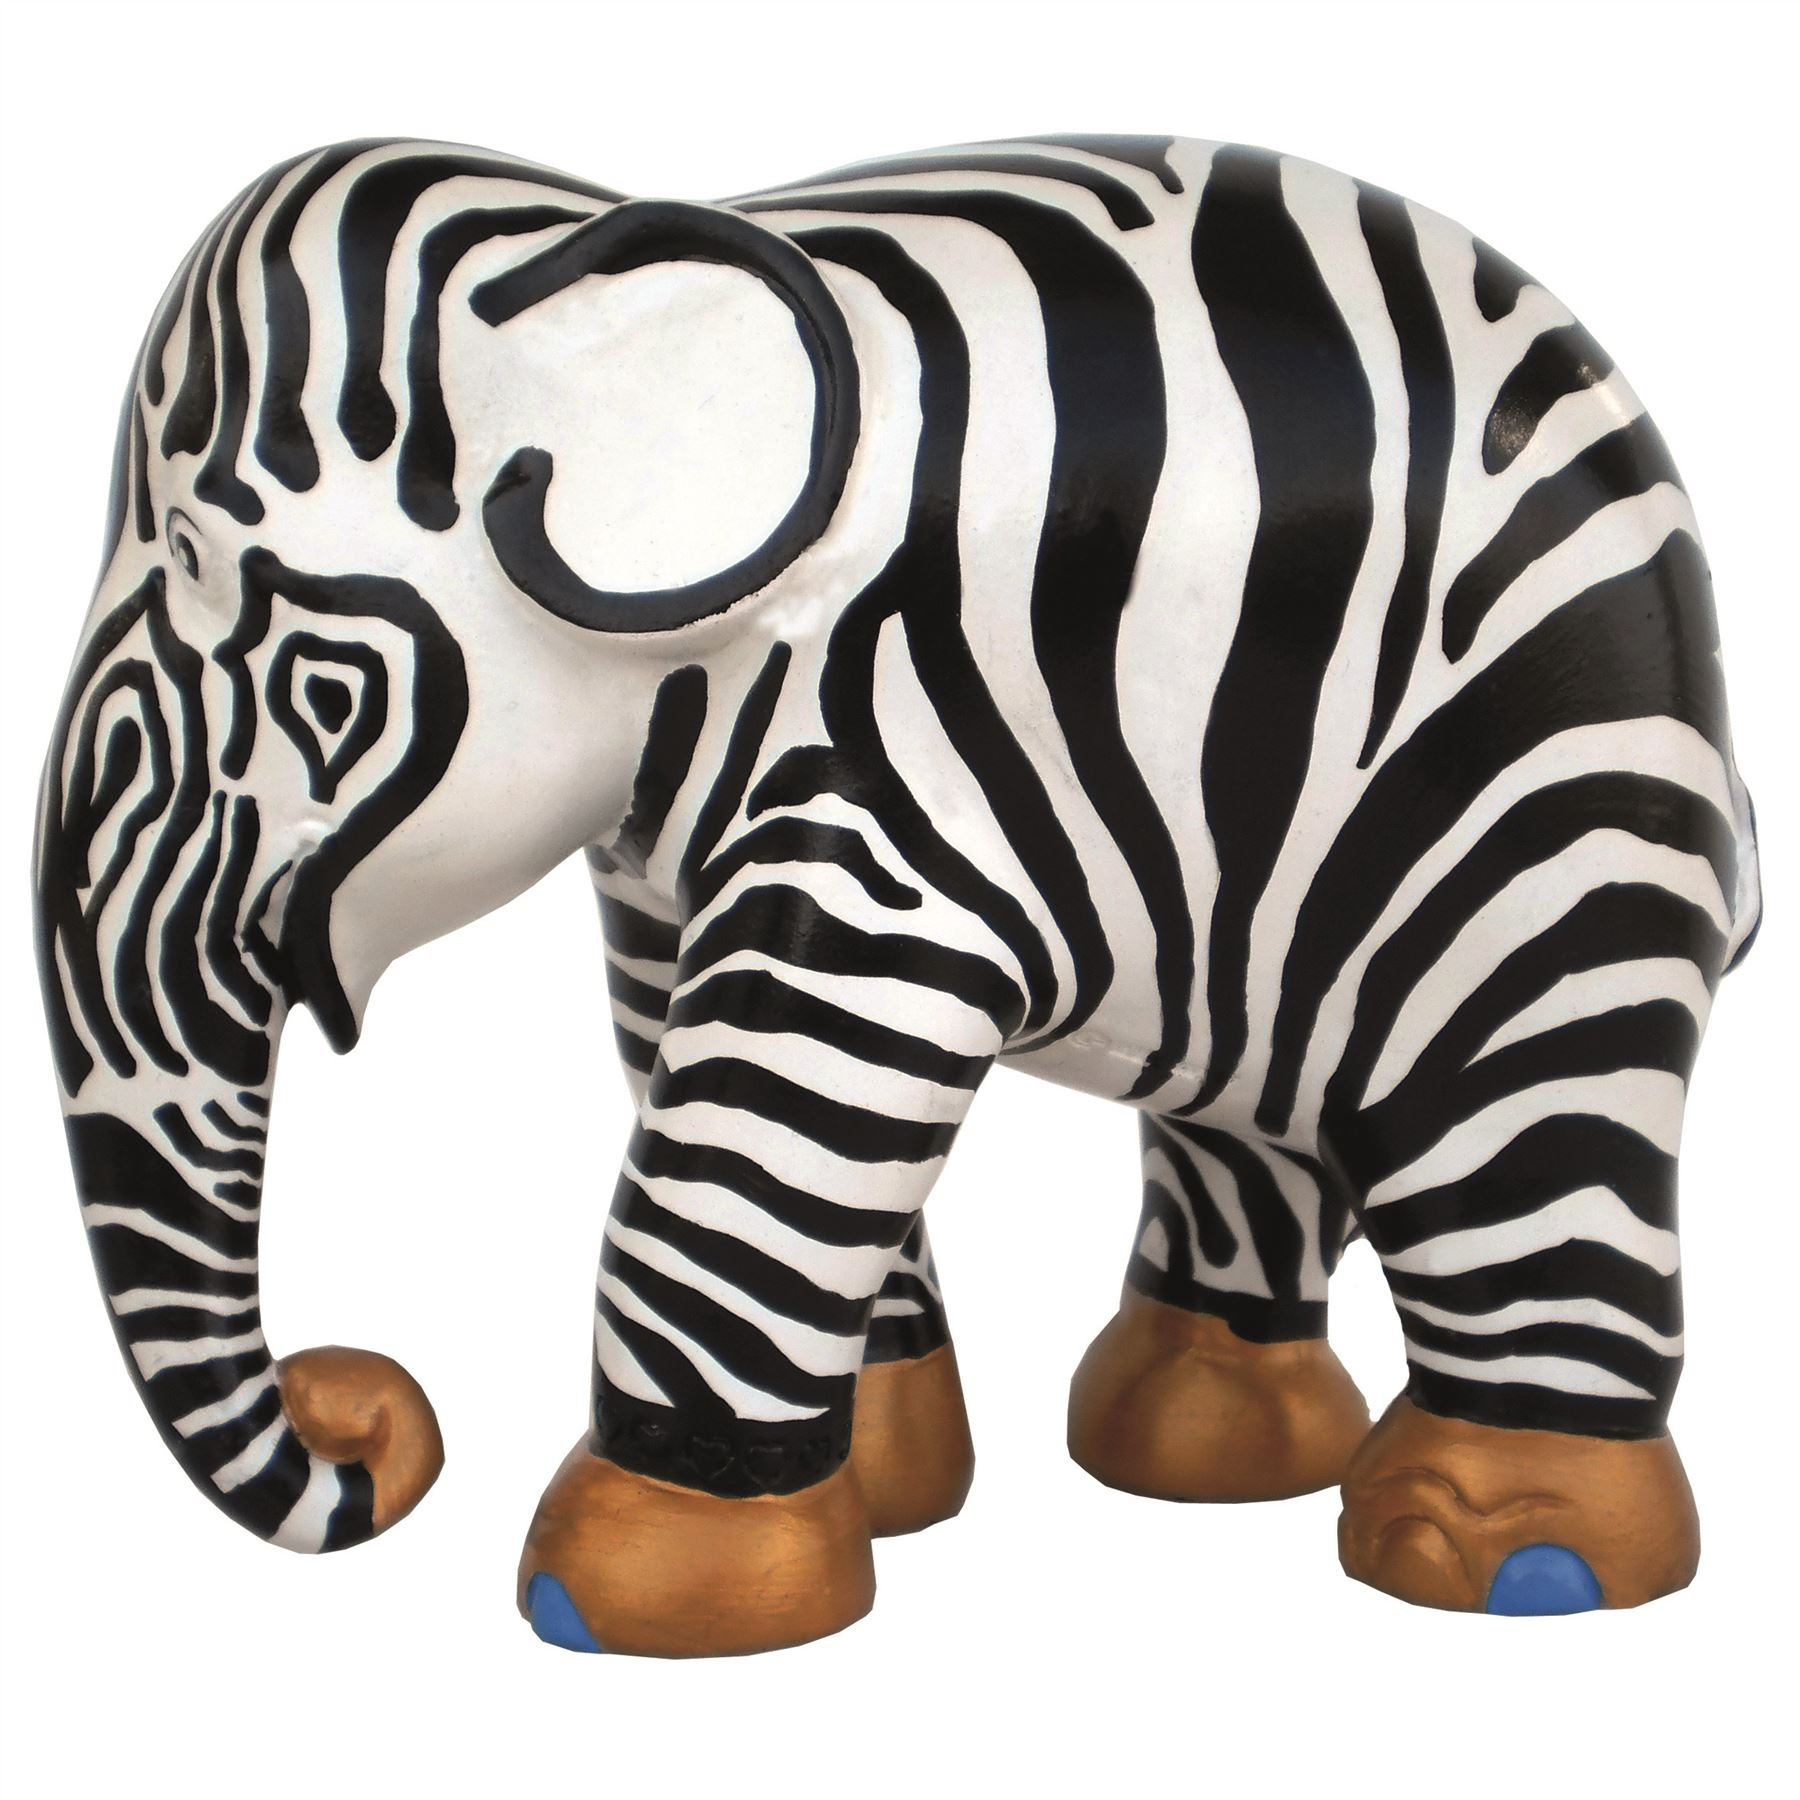 Elephant Parade Ornament Collectable Limited Edition White Tiger